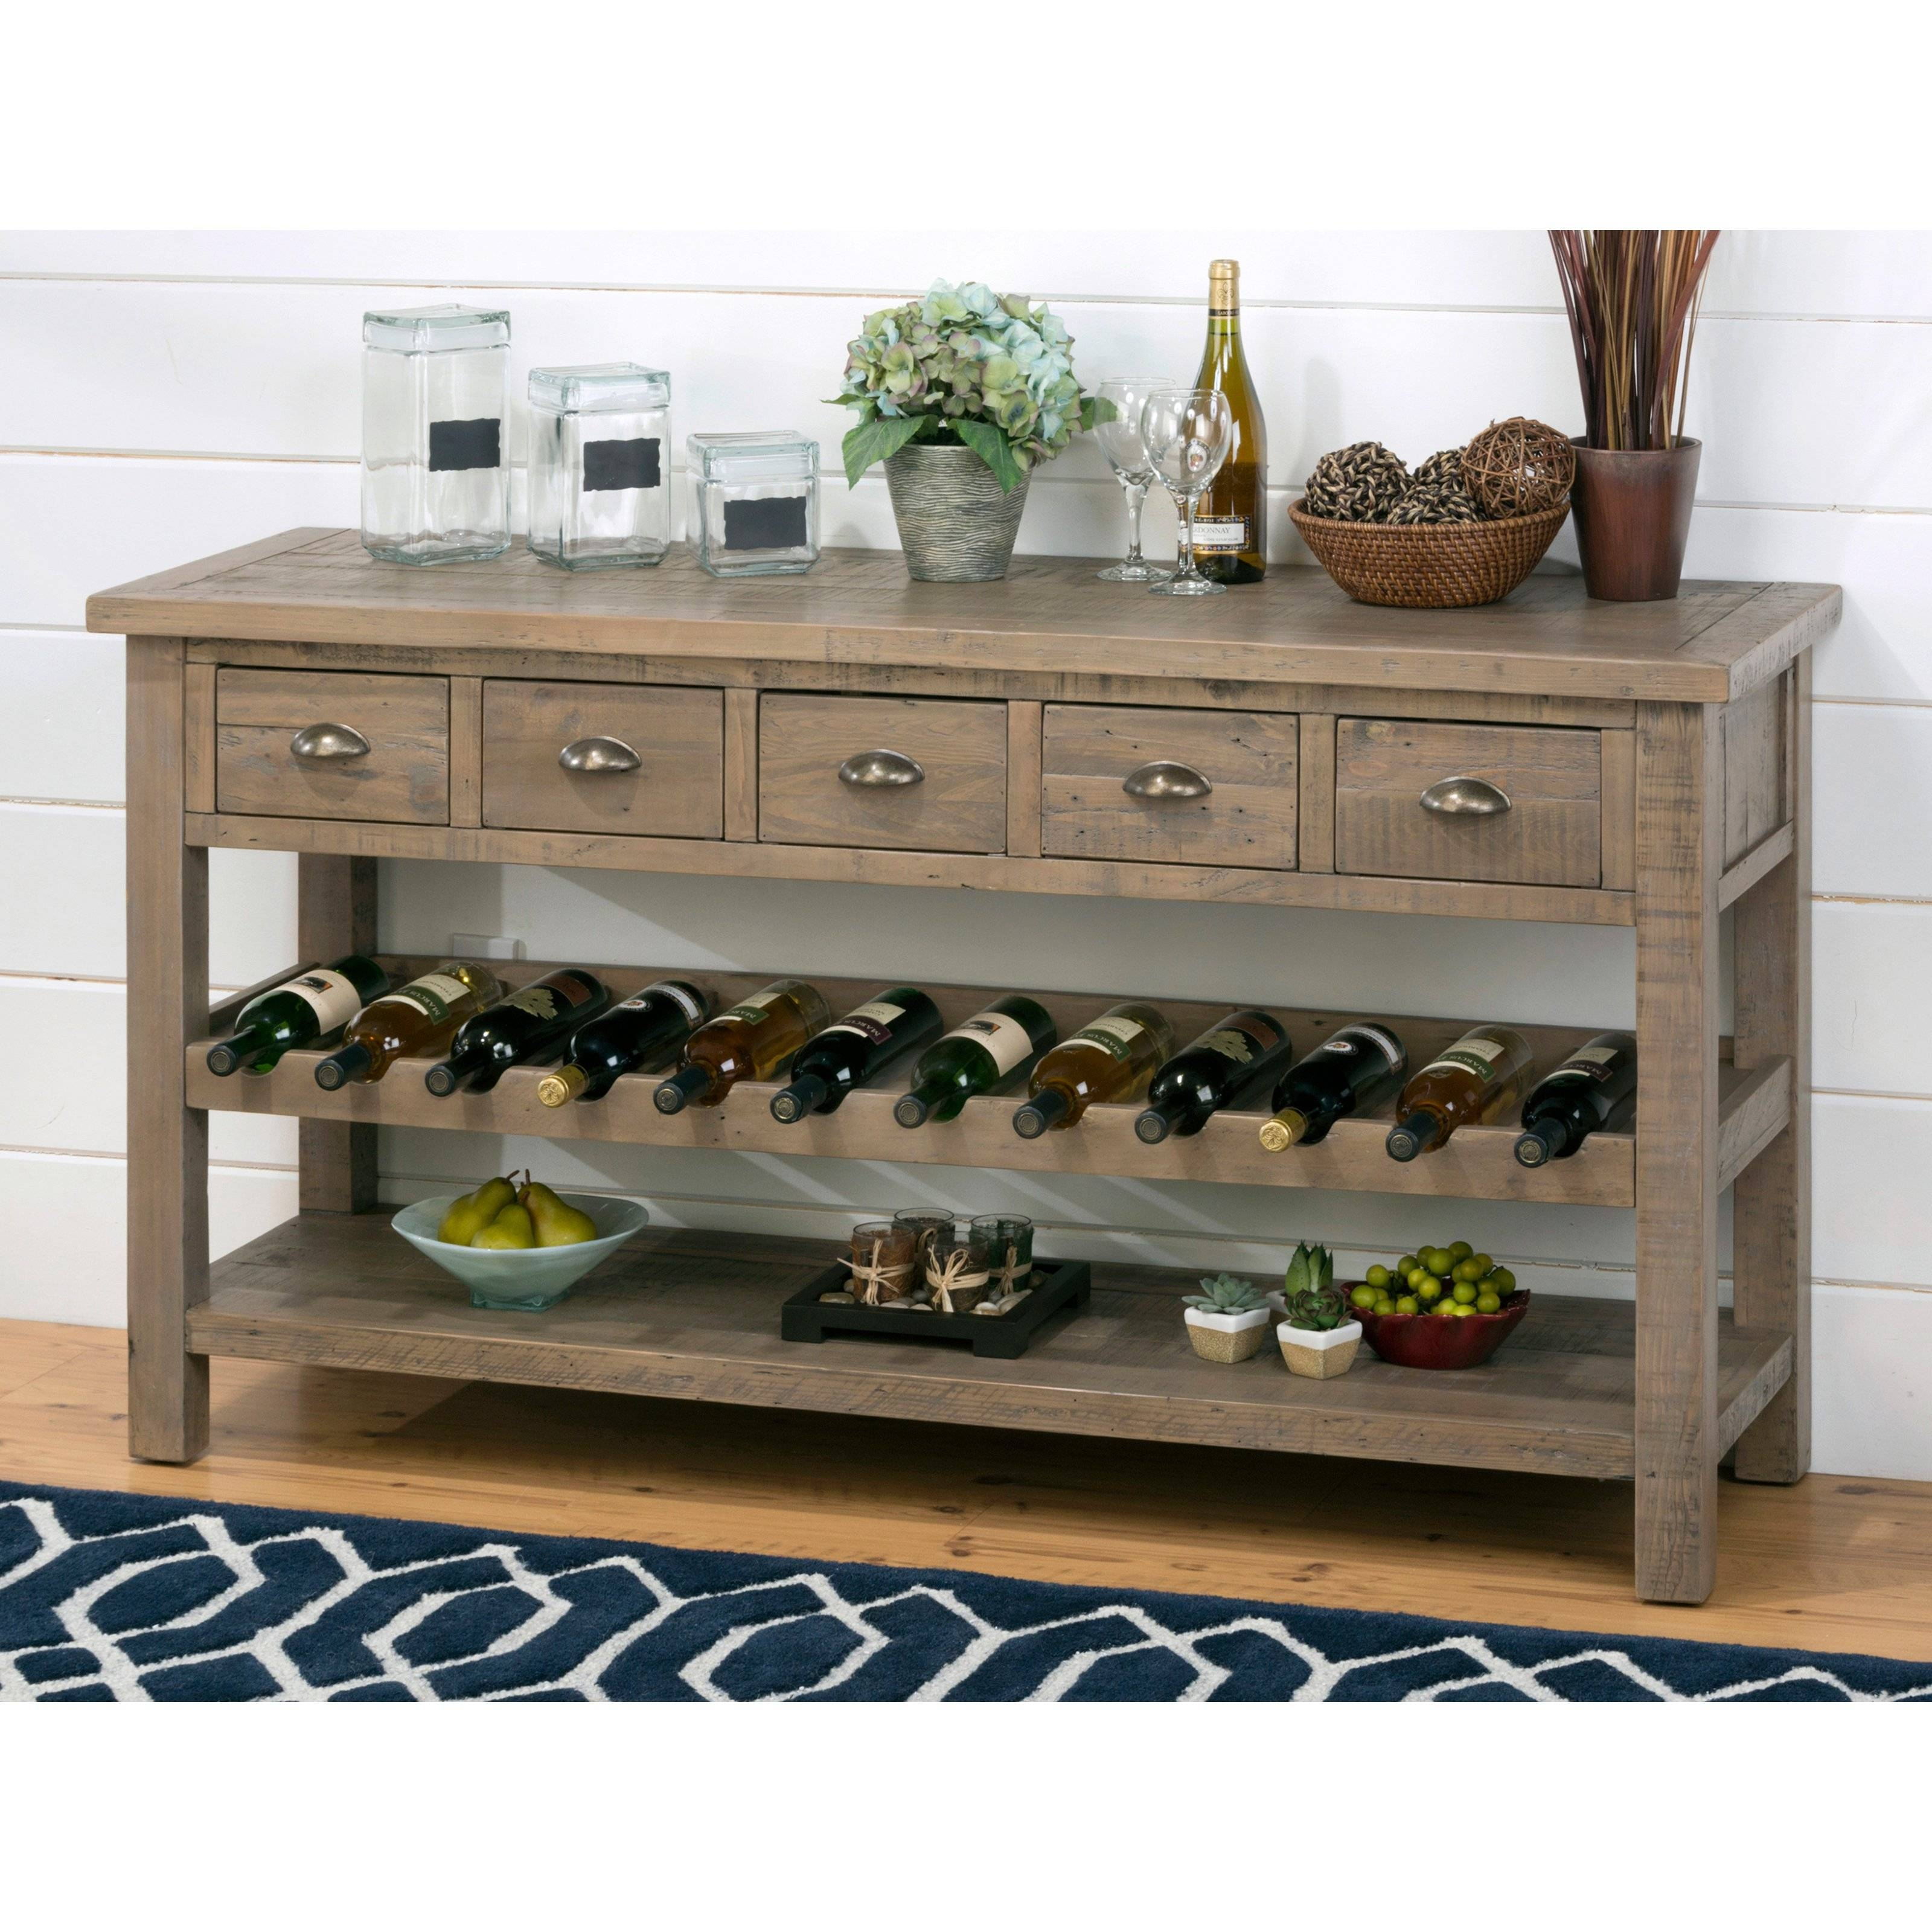 Buffet Server With Wine Rack 1932Ac Contemporary Buffets And Wine With Regard To Sideboards With Wine Racks (#2 of 20)